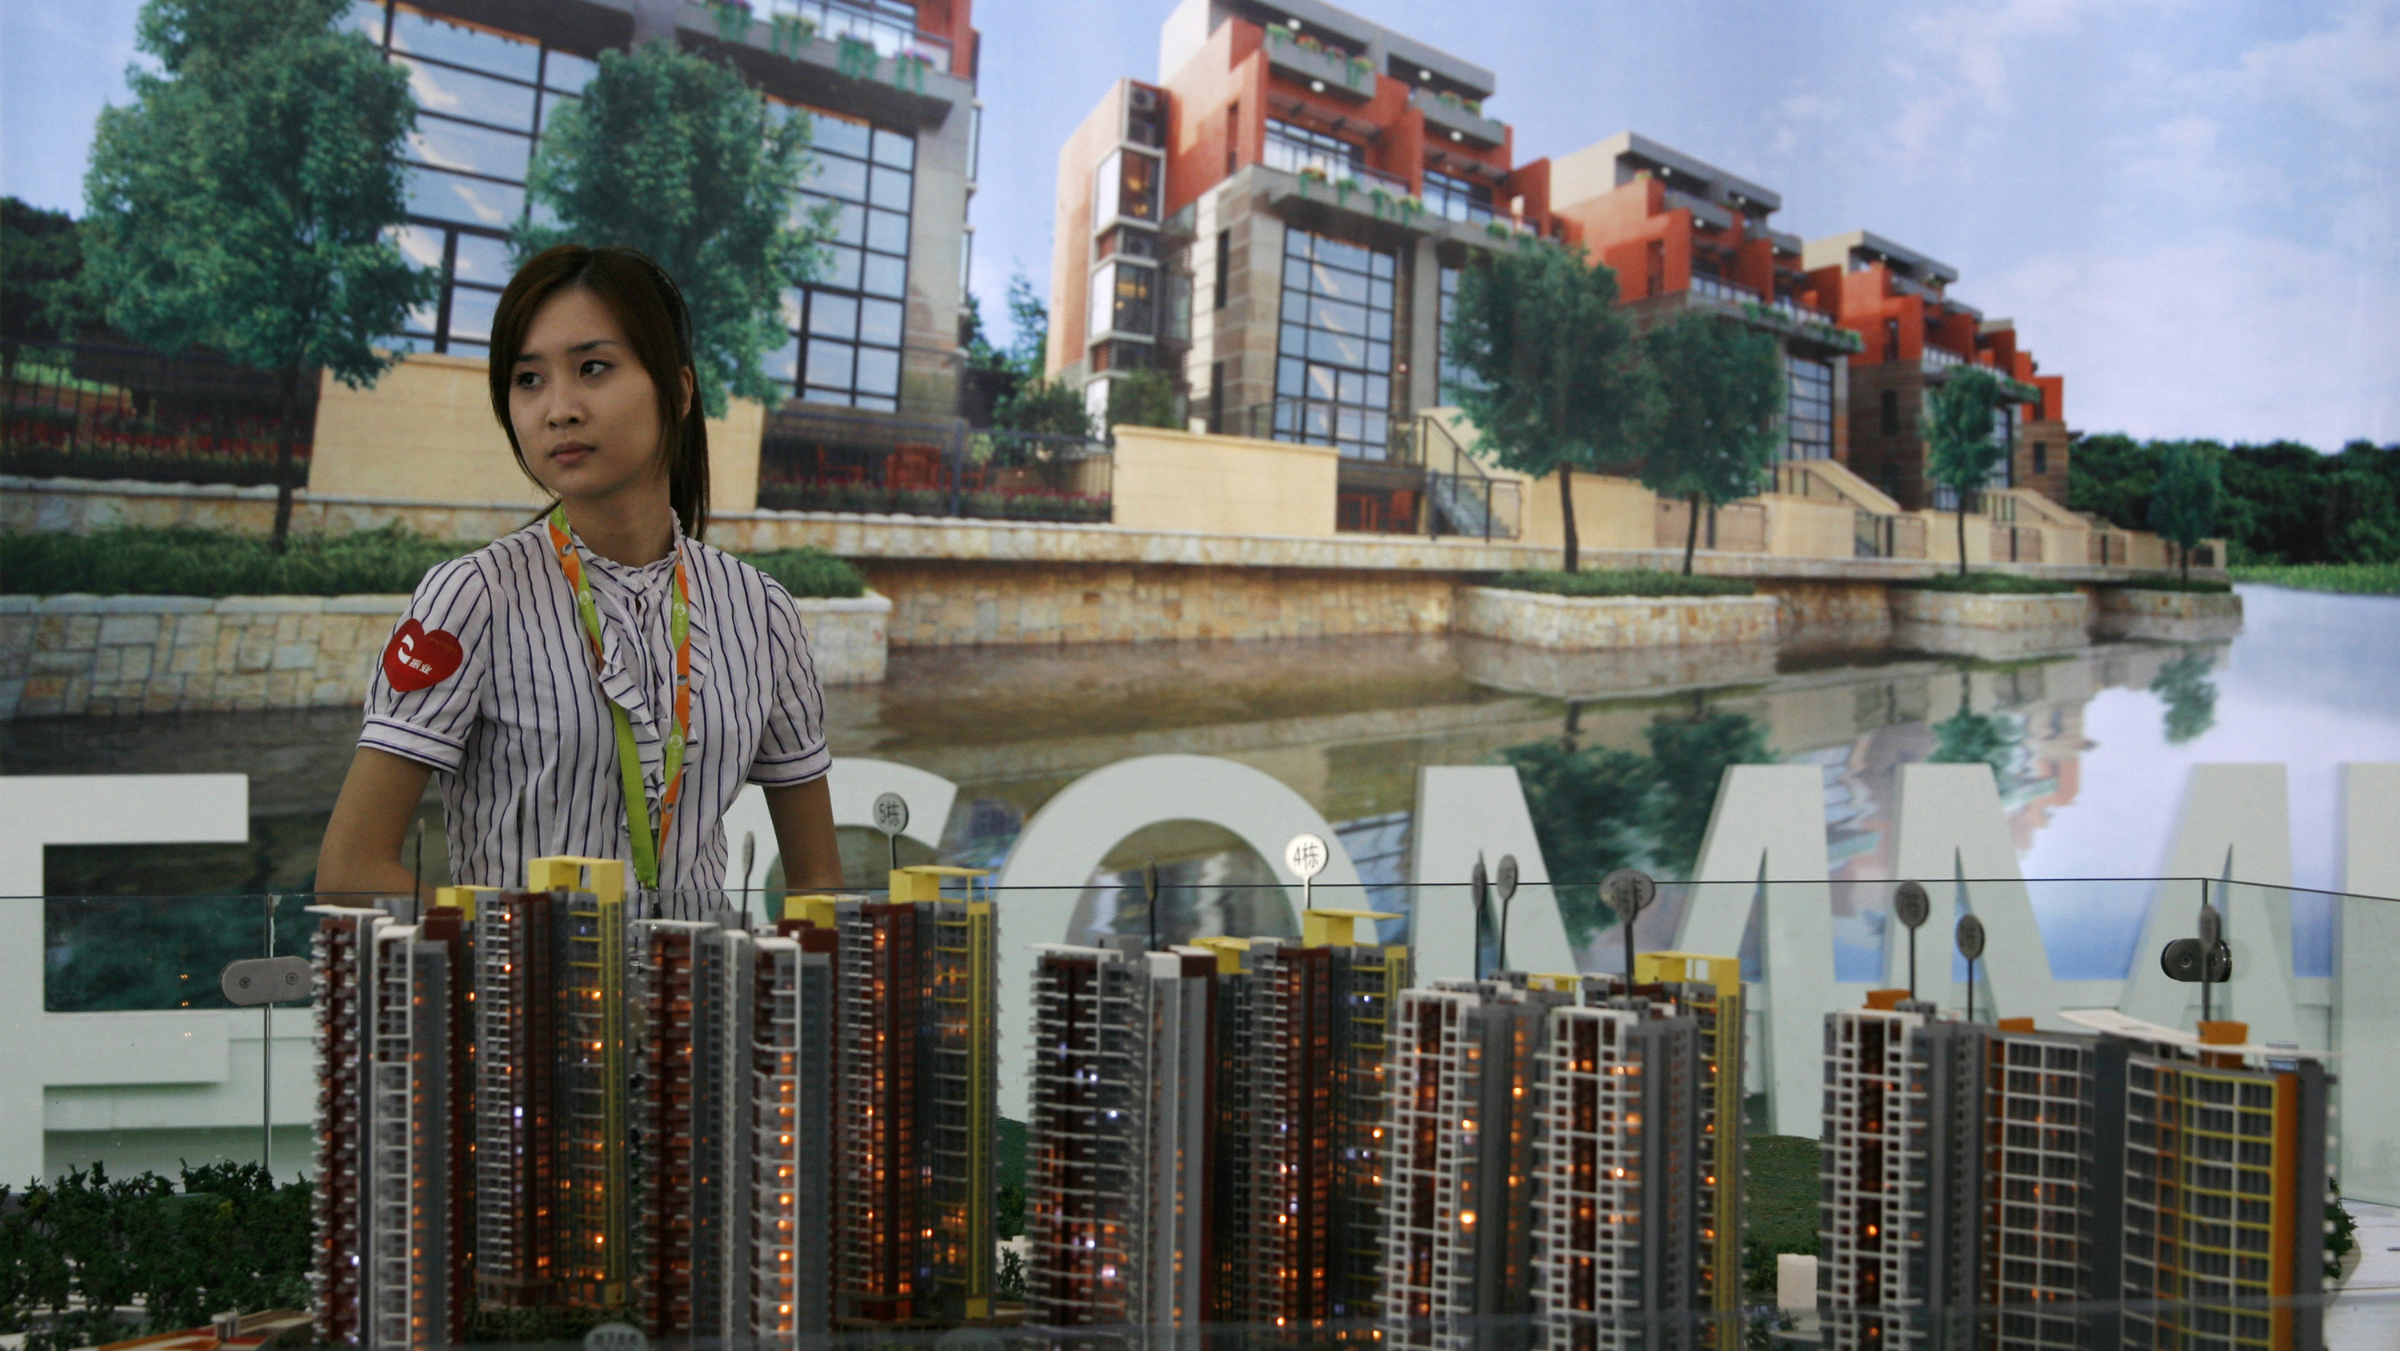 A sales agent waits for customer in front of the model of a property development at the 5th China (Shenzhen) Real Estate Fair, in the southern Chinese city of Shenzhen May 4, 2010. Chinese property prices are looking bubbly and the government is stepping up its efforts to take the market off the boil. In contrast to regional neighbours, China has so far eschewed the blunter instrument of higher borrowing costs, not least because it harbours doubts about the solidity of the global recovery and has an eye on the all-important property market. REUTERS/Bobby Yip